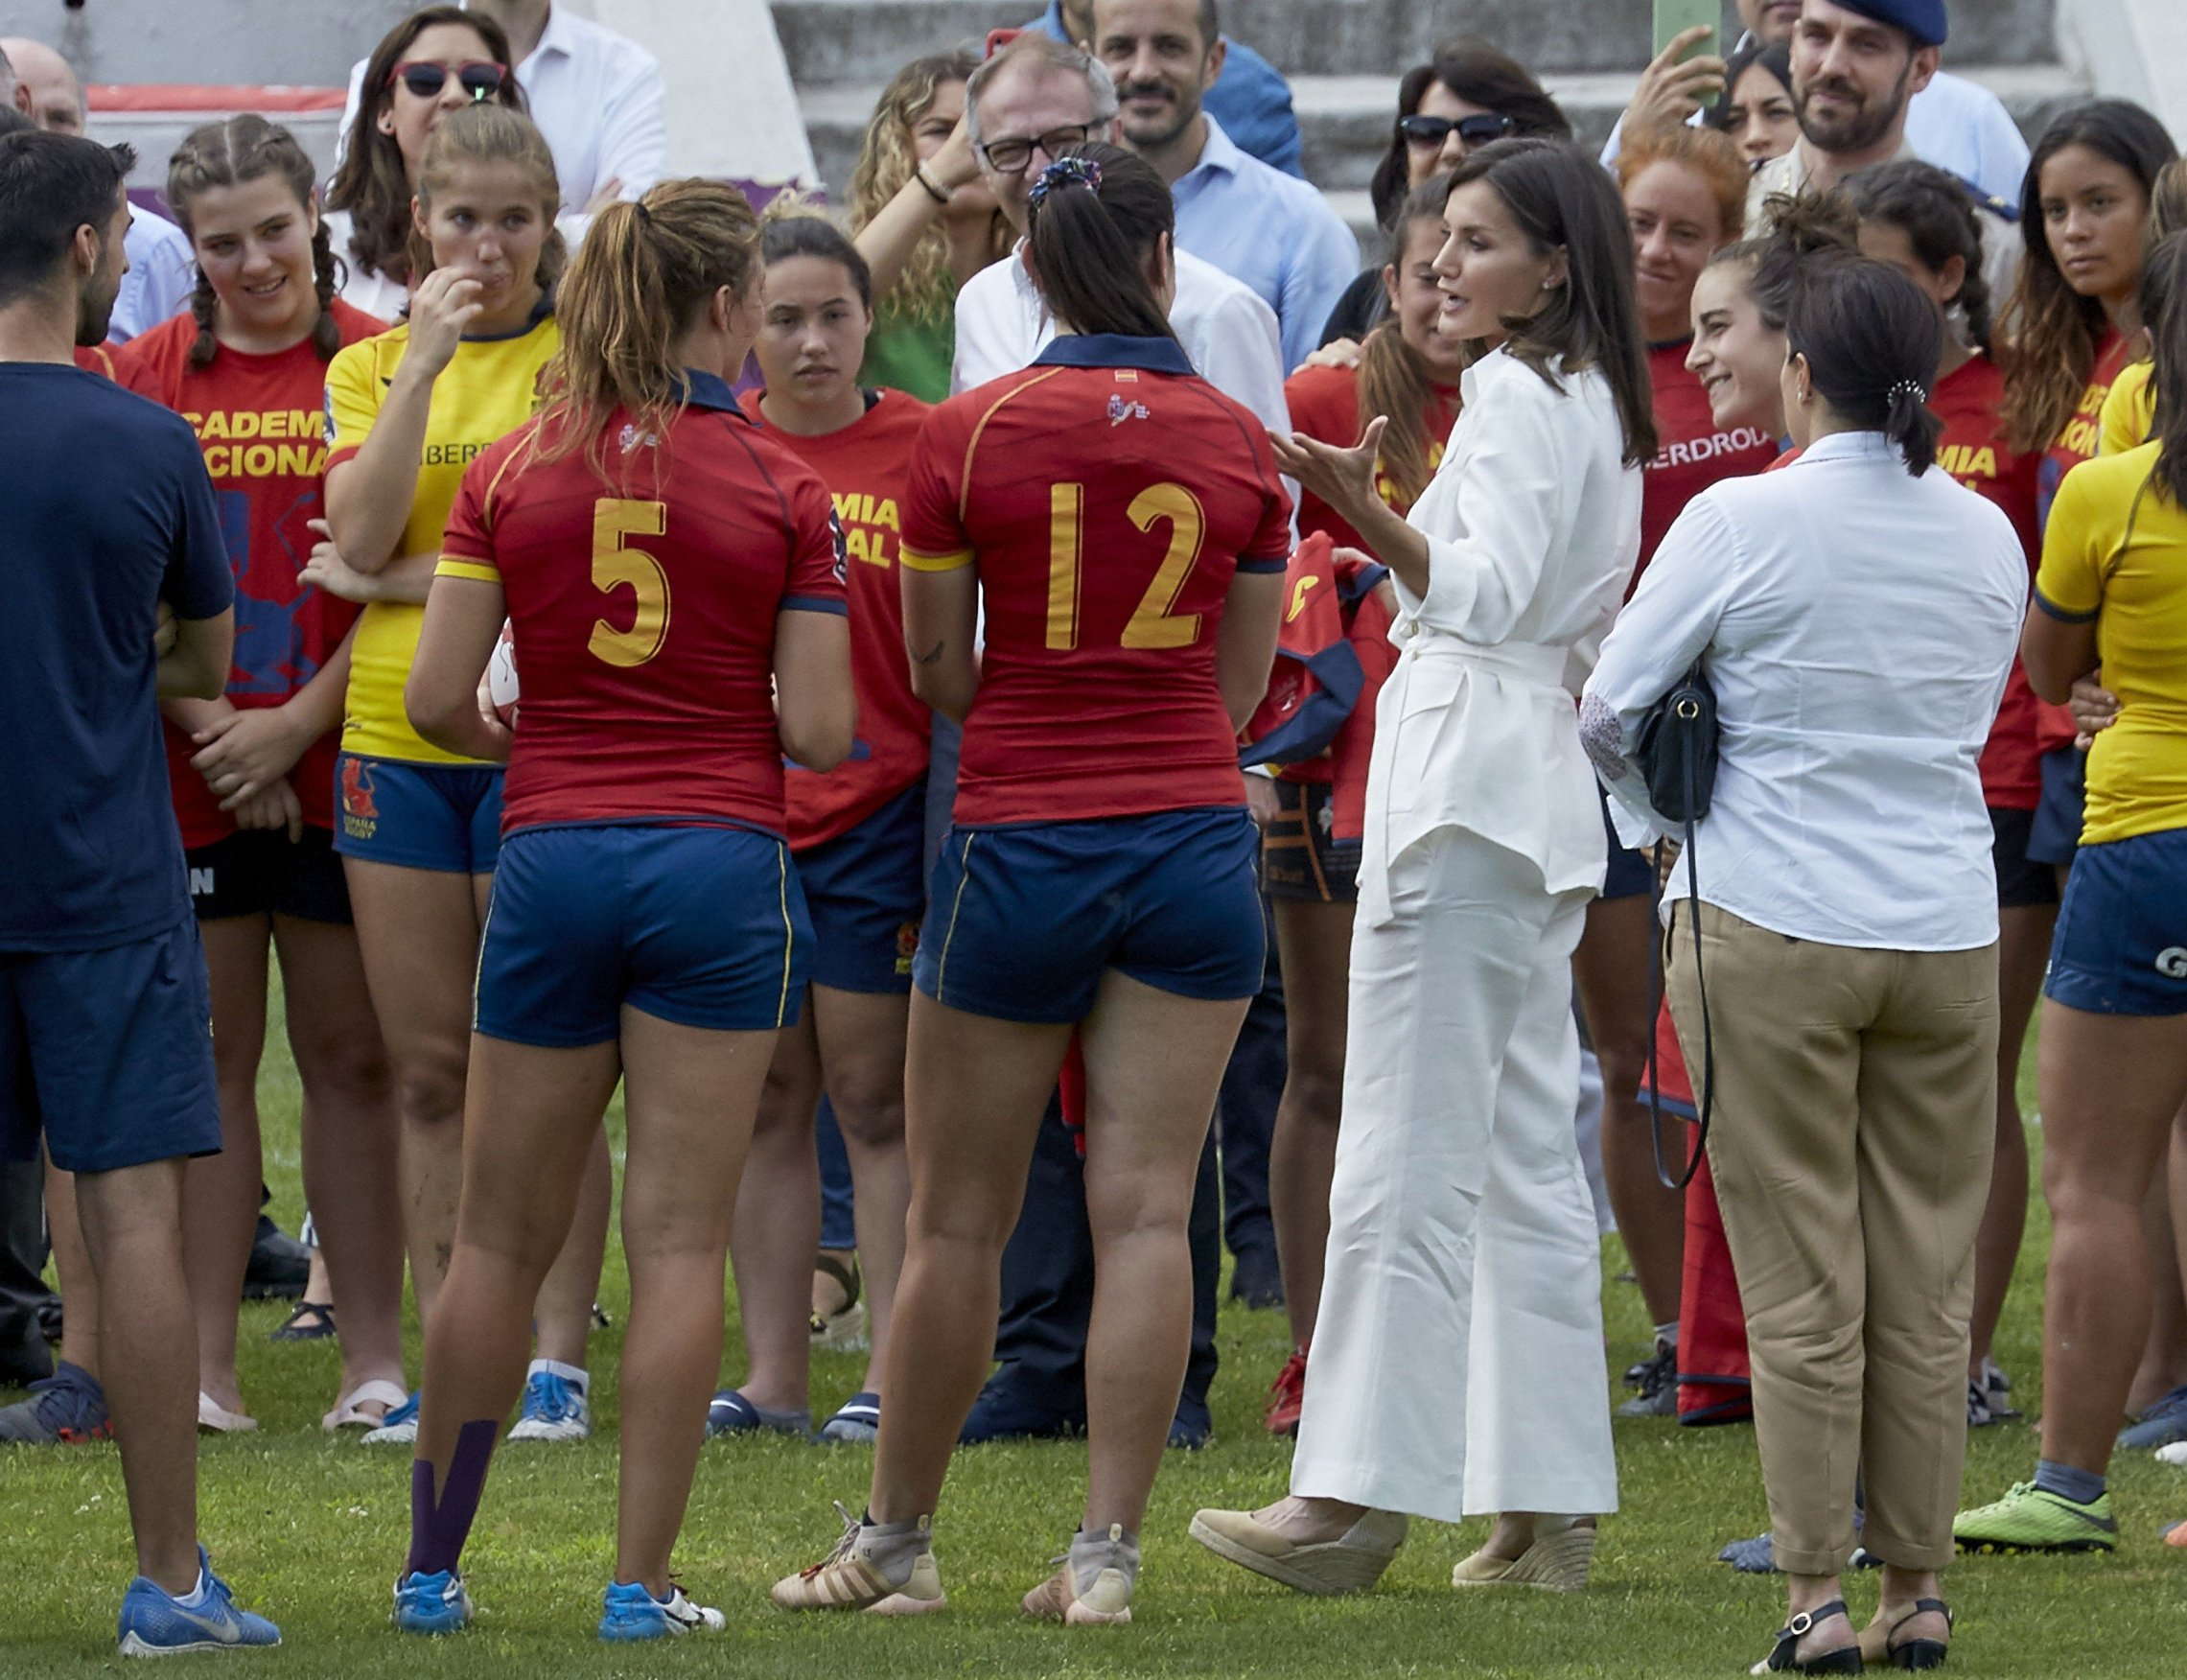 Queen Letizia of Spain attends the training of the Rugby 7 Female National Team on July 04, 2019 in Madrid, Spain.//CORDOBANAVALPOTRO_let2347/1907041429/Credit:Miguel Cordoba/SIPA/1907041429, Image: 454075308, License: Rights-managed, Restrictions: , Model Release: no, Credit line: Profimedia, Sipa Press